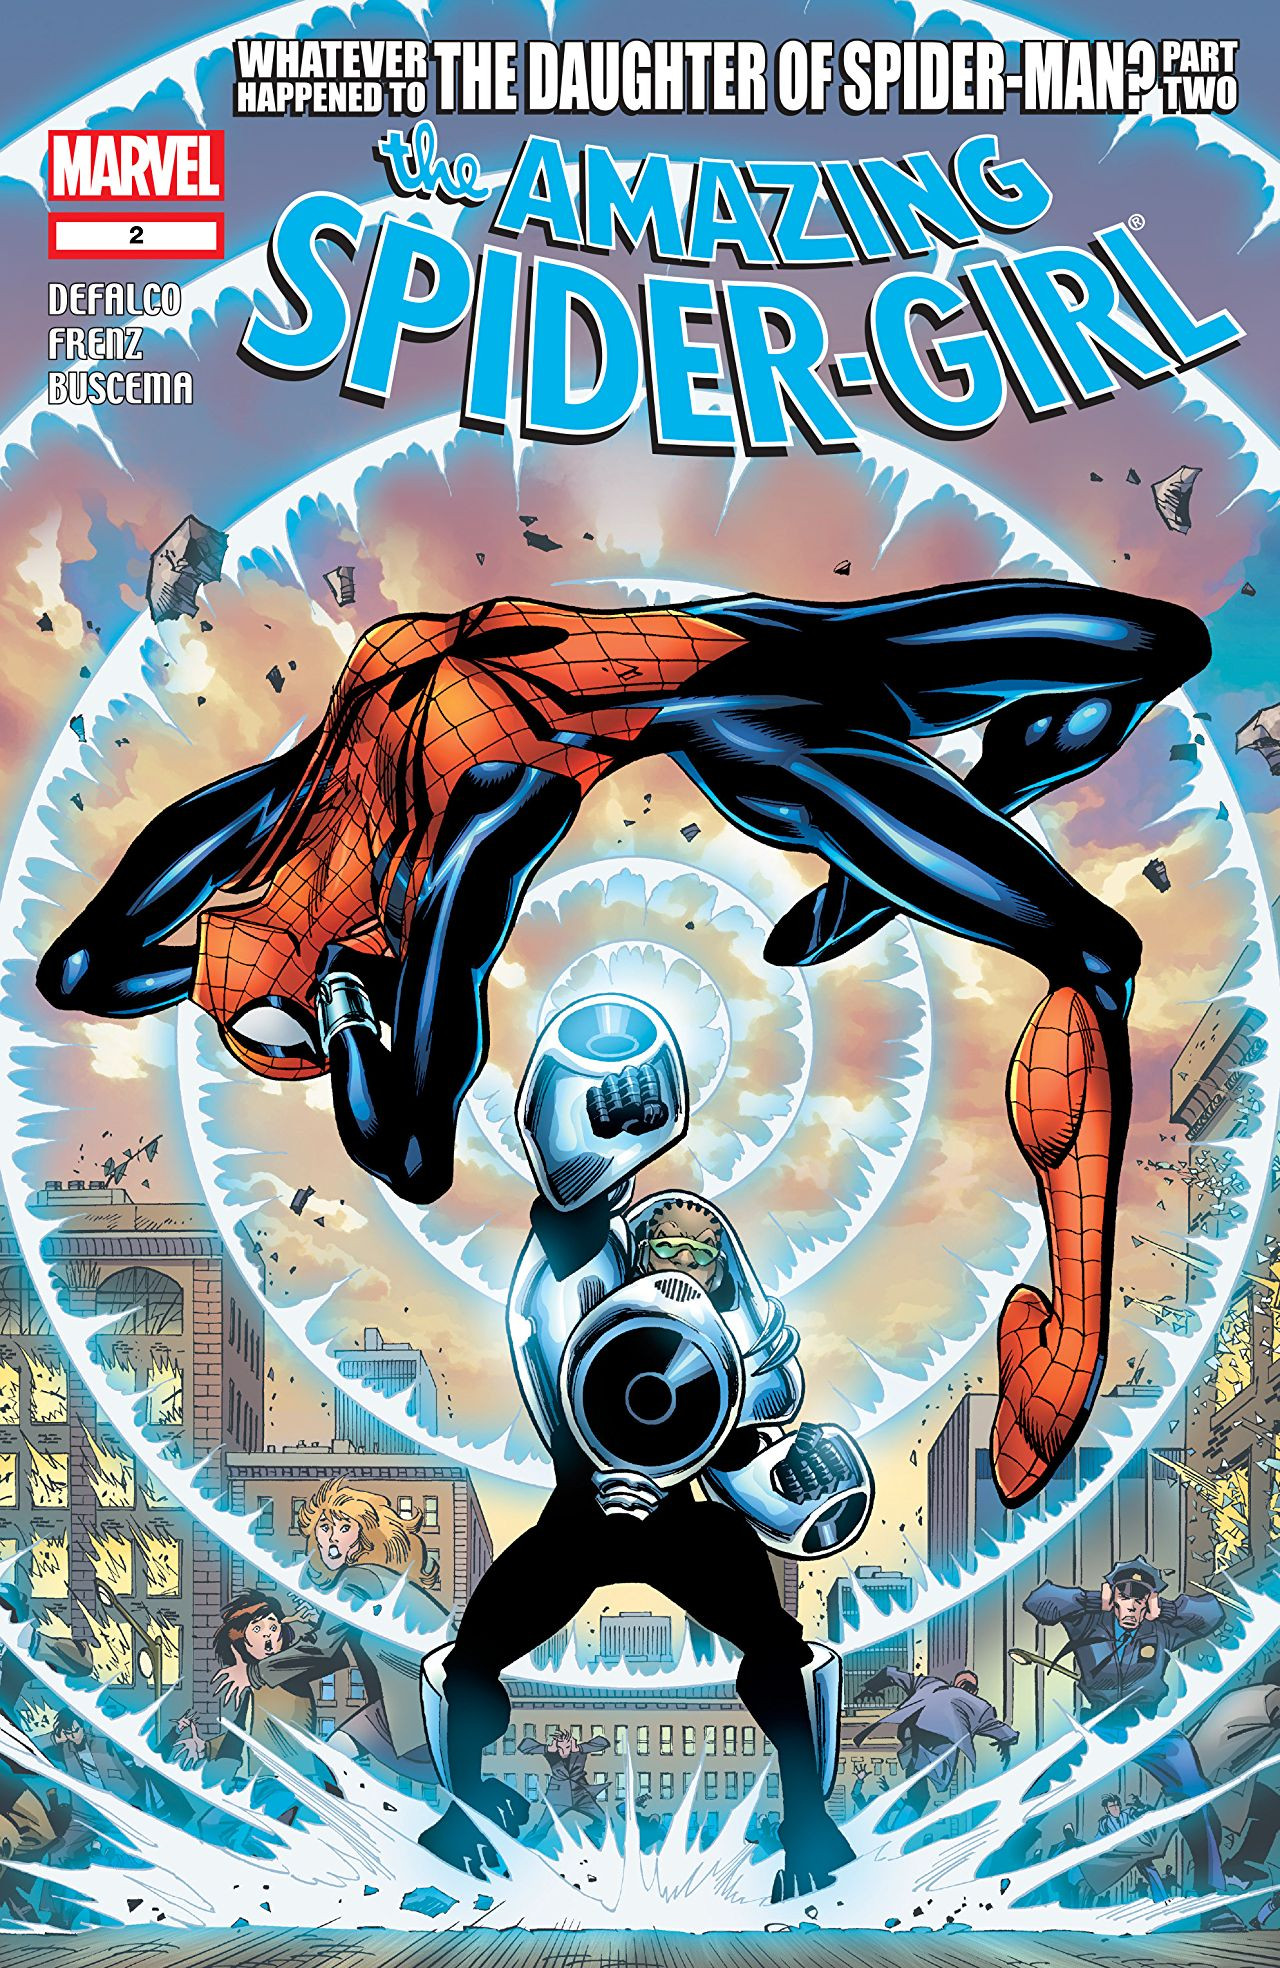 Amazing Spider-Girl Vol 1 2